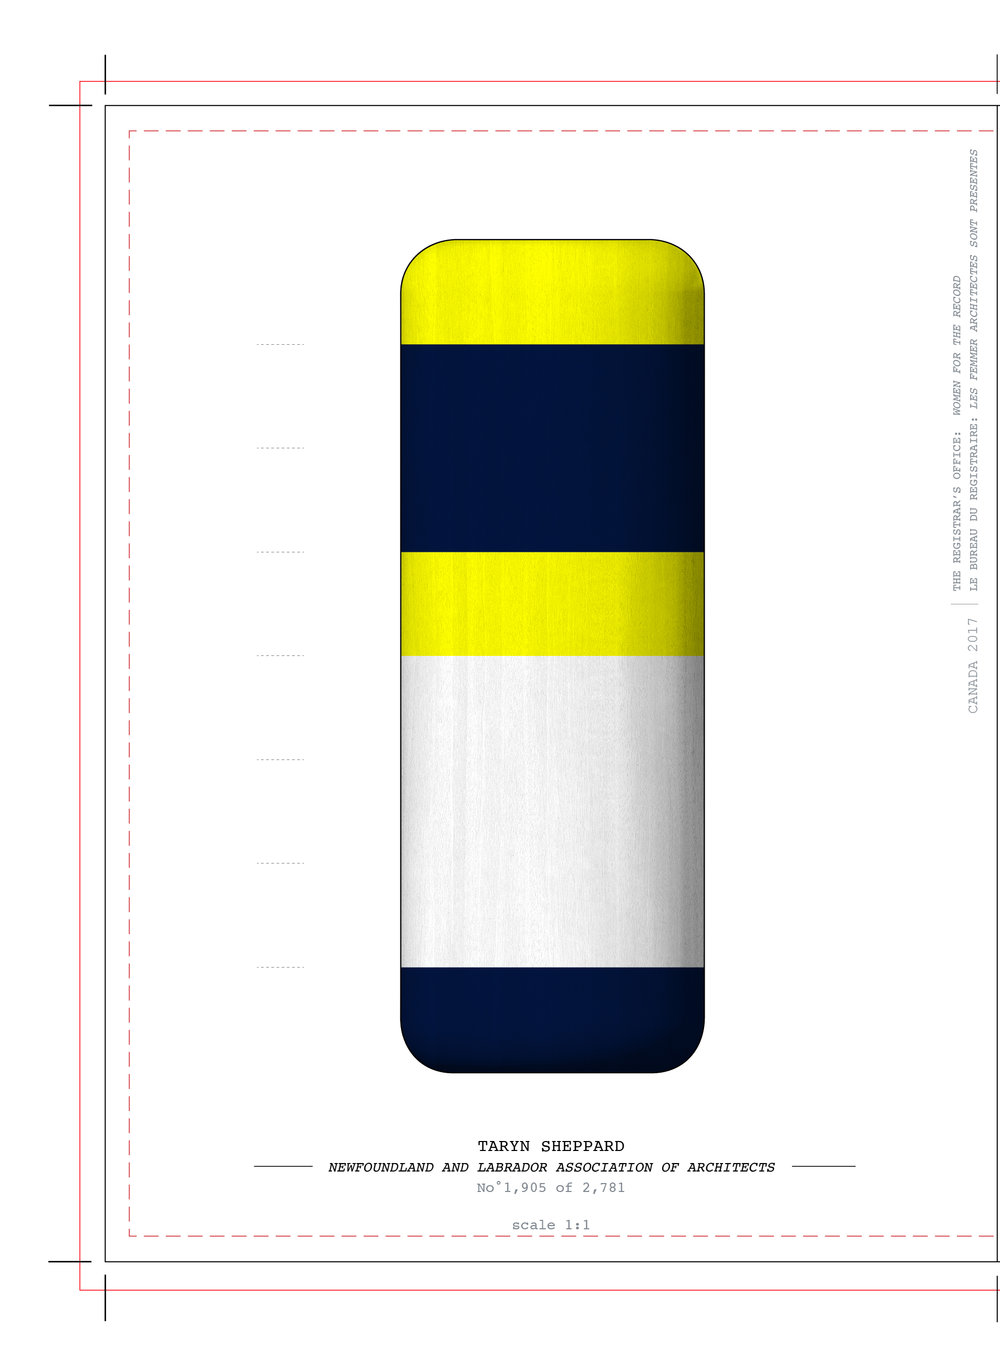 Coded buoys for Taryn Sheppard, 2017. Acre Architects